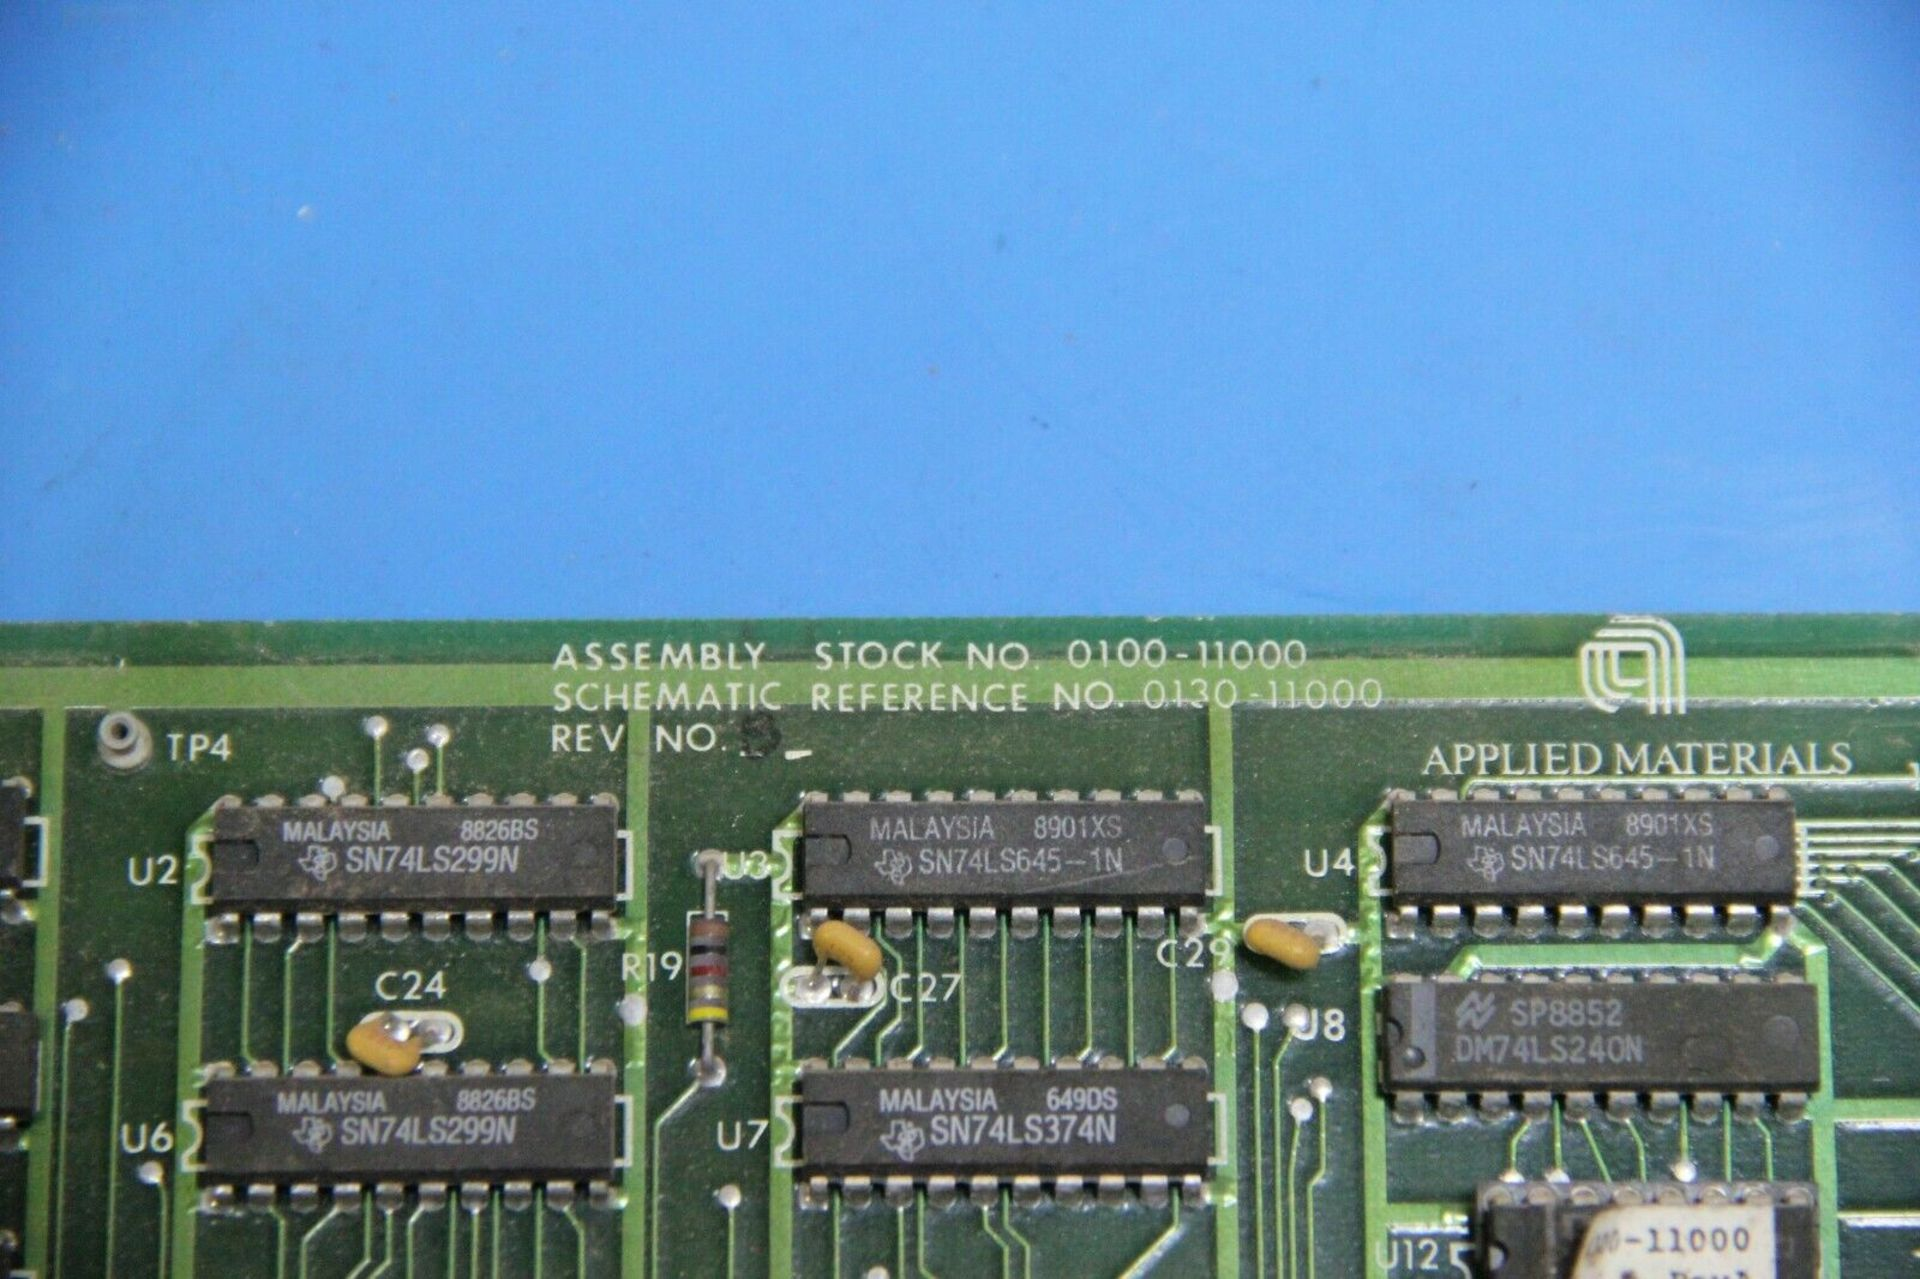 AMAT APPLIED MATERIALS ANALOG INPUT BOARD - Image 2 of 3